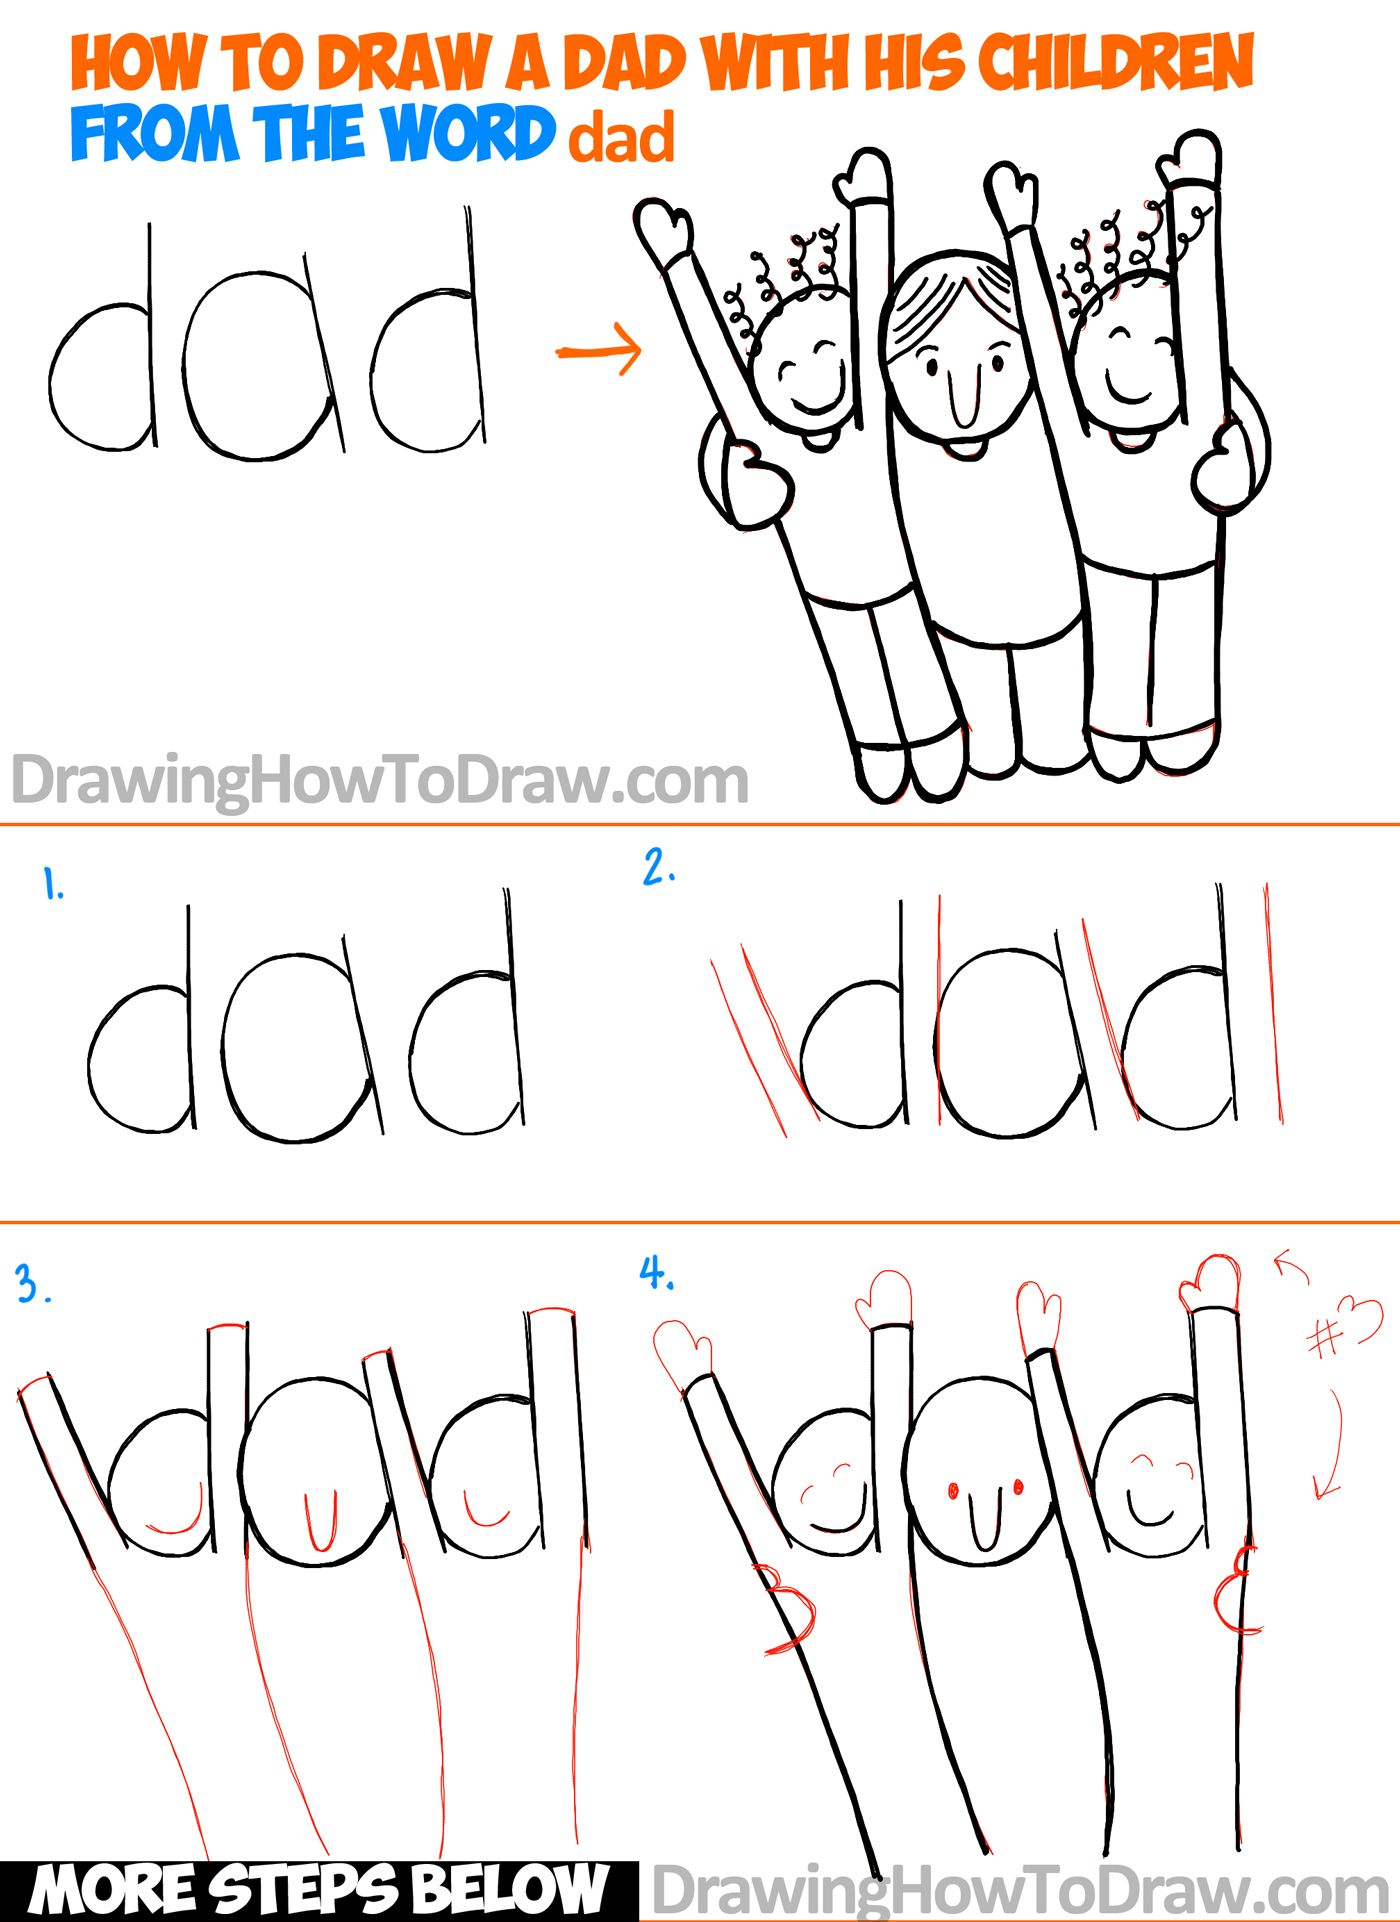 Uncategorized Basic Drawing For Children learn how to draw a cartoon bunny rabbit scene from lowercase dad and children the word easy toon